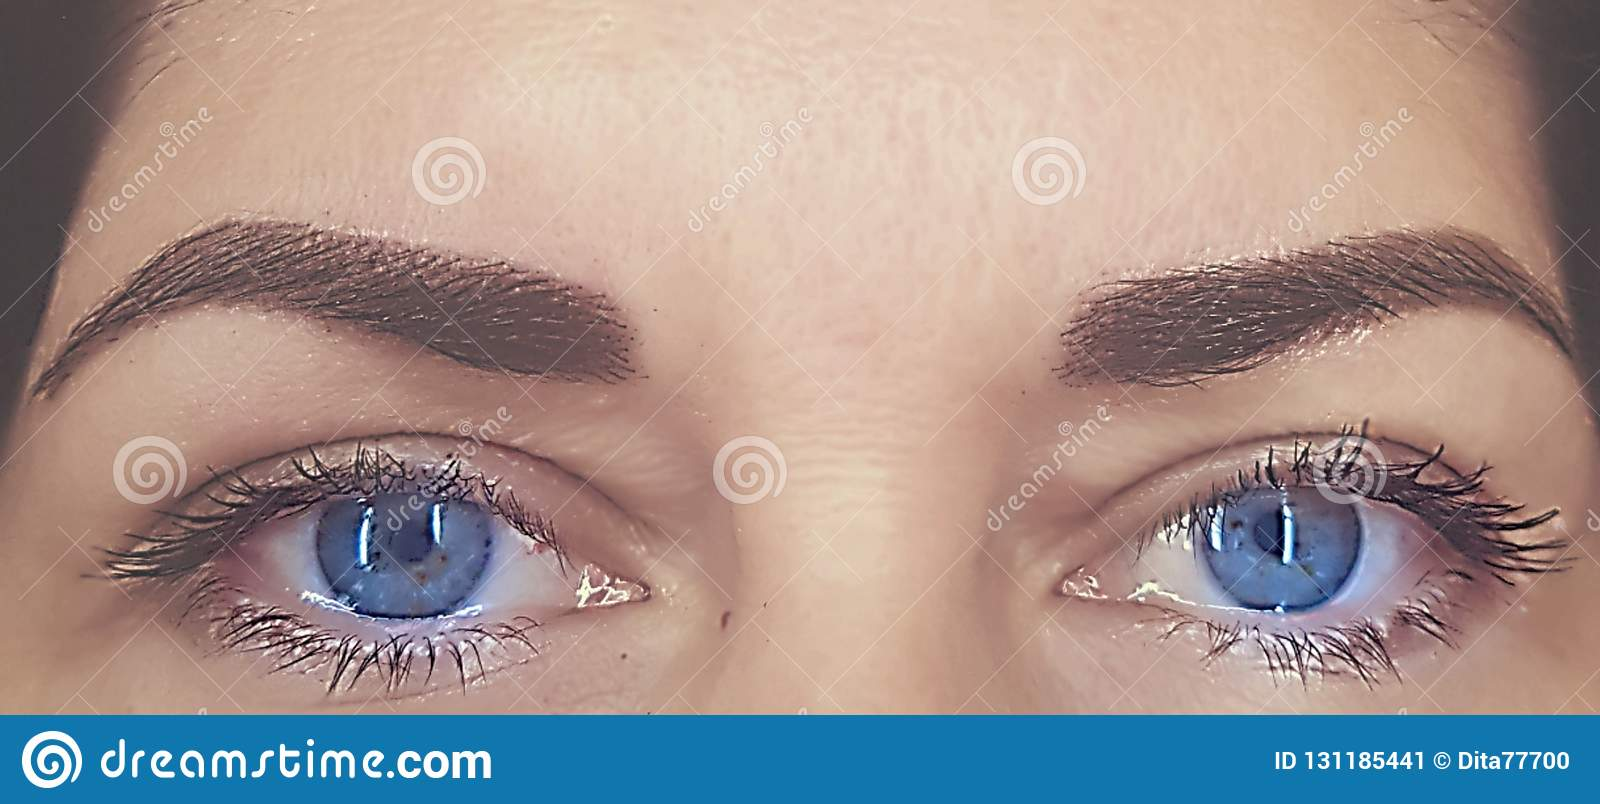 Eyebrows with correction and staining henna. Light day makeup. Clean and light skin. Blue eyes and natural eyelashes